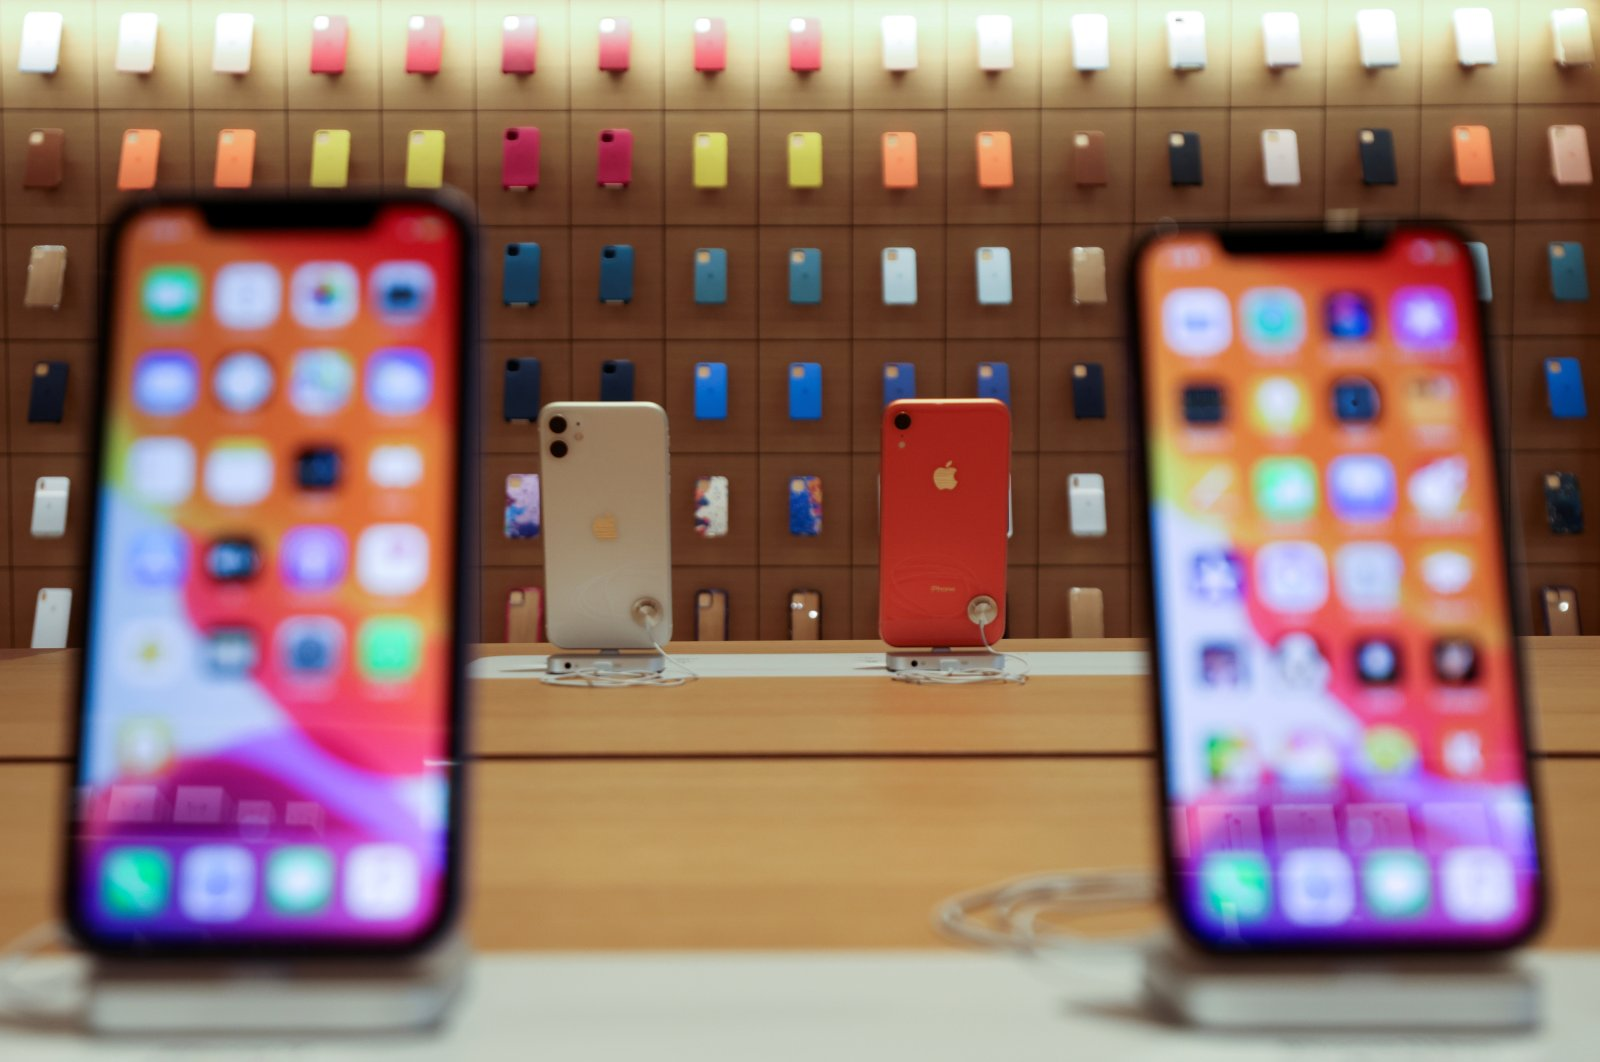 iPhones are displayed at the upcoming Apple Marina Bay Sands store in Singapore, September 8, 2020. (REUTERS Photo)